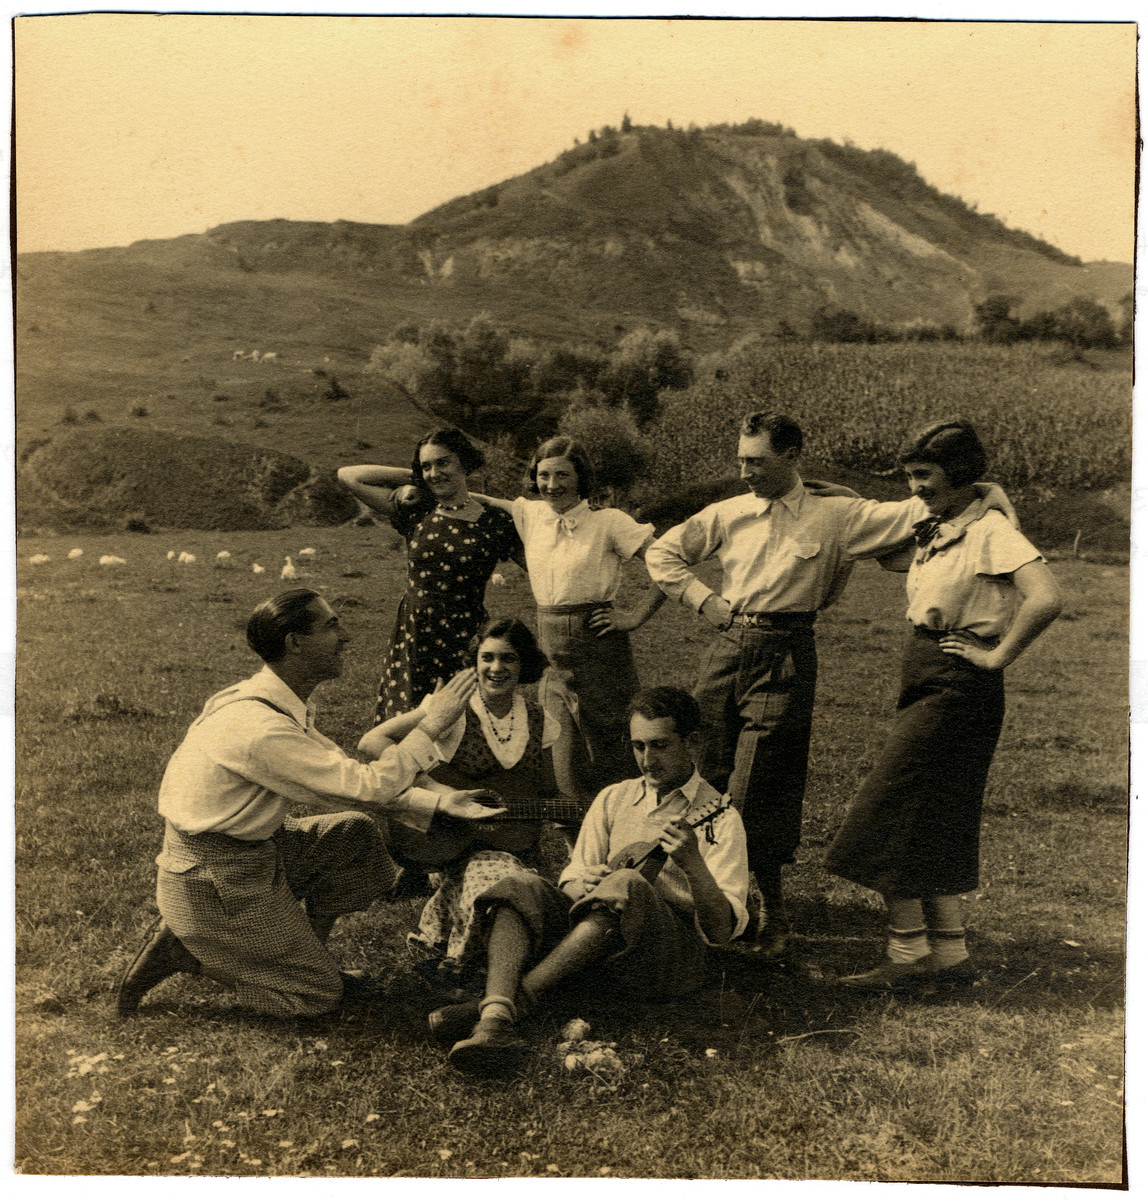 Romanian Jewish youth sing and dance to a mandolin in the Romanian countryside.  Among those pictured are (seated left to right): Siegmund Segal, Miraim Segal (unidentified). Standing: Adolf Fortes and Anna Segal (Grossman).